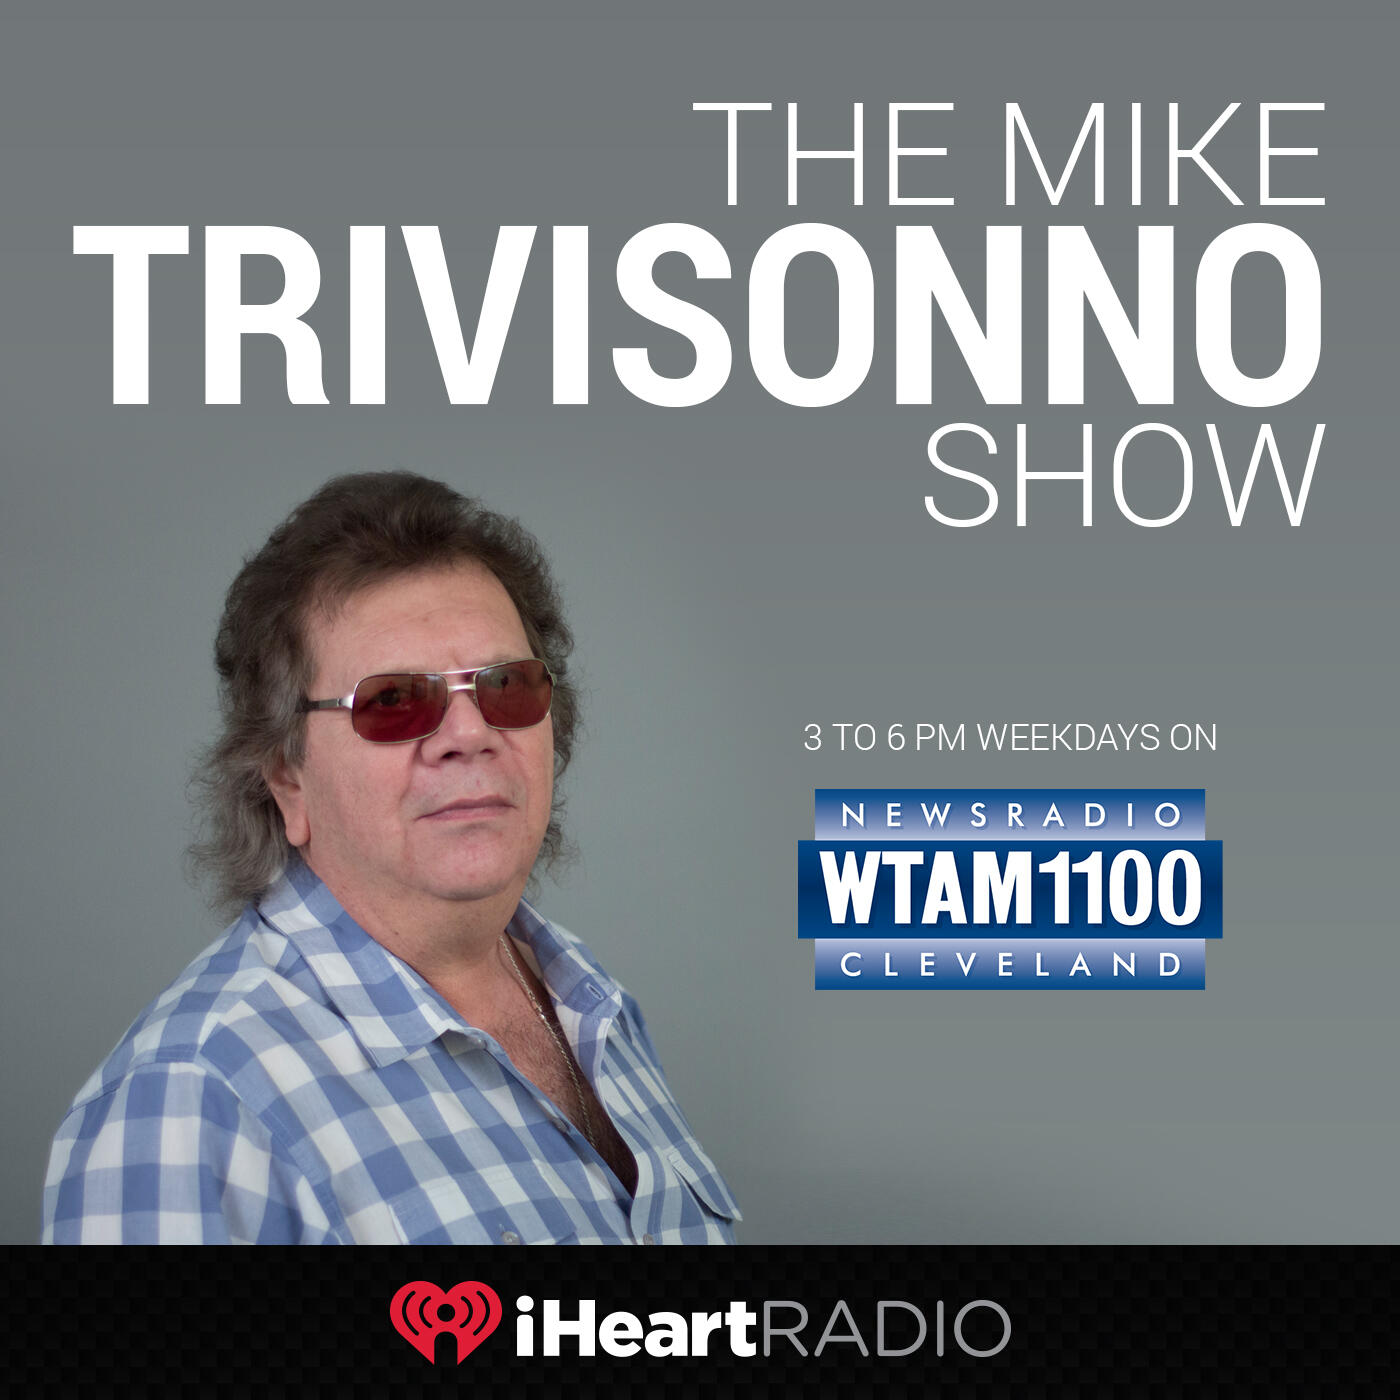 Listen to the The Mike Trivisonno Show Episode - 10-11-19 Mike Trivisonno Show on iHeartRadio | iHeartRadio